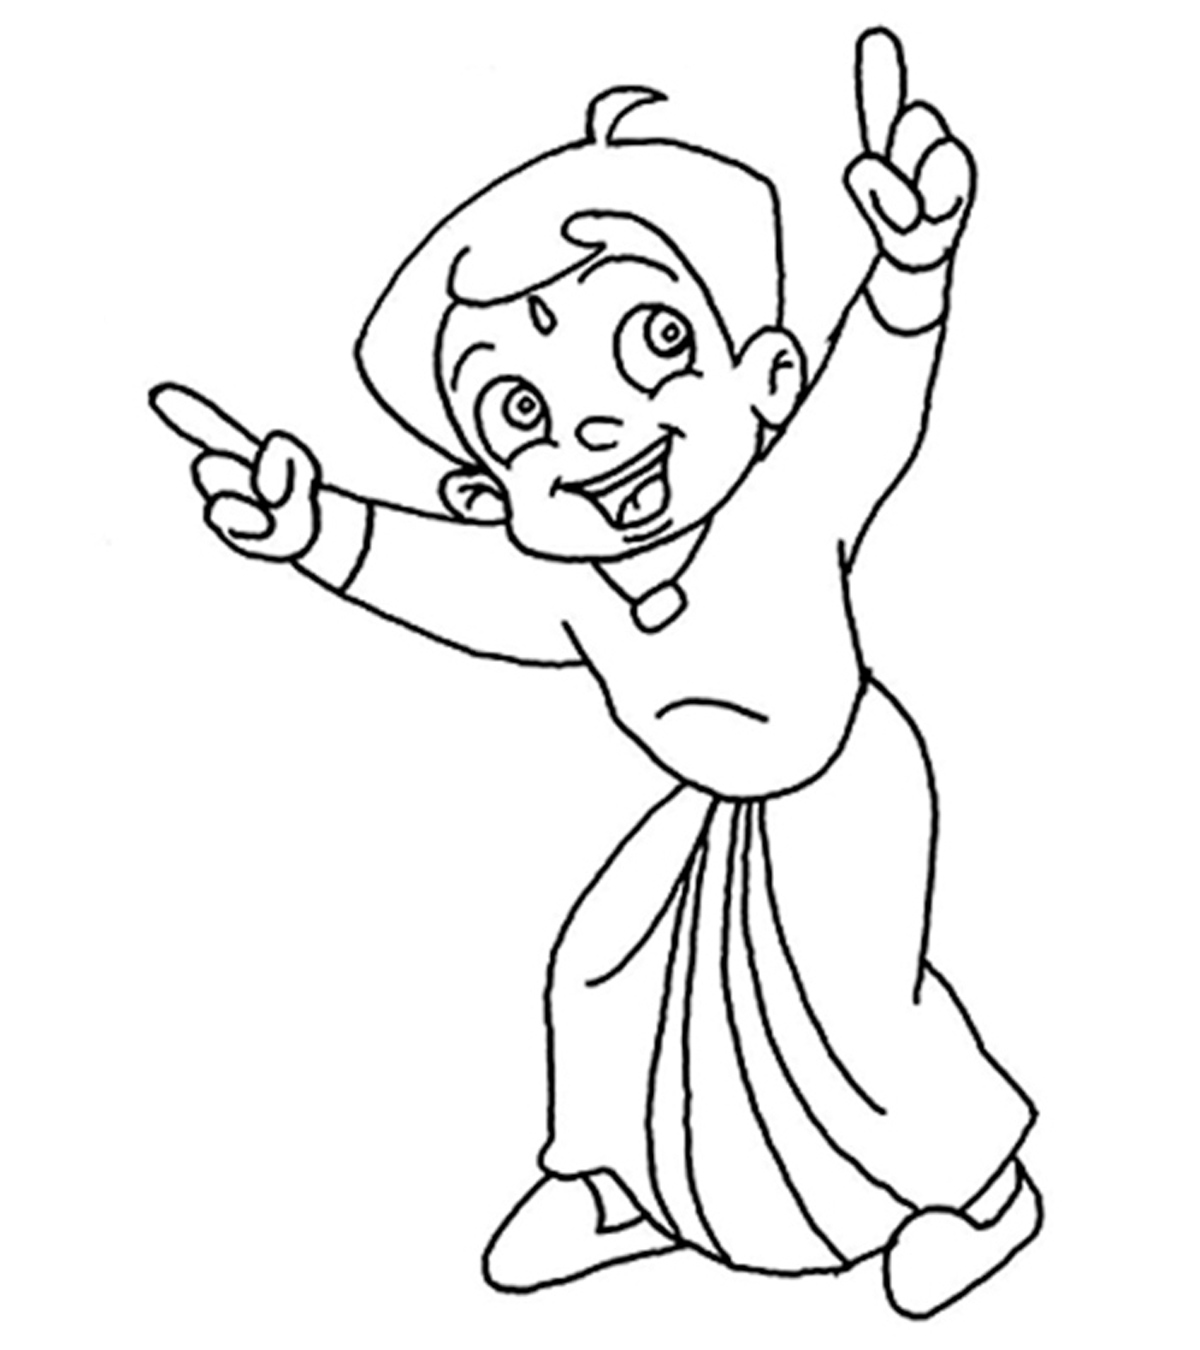 Top 25 free printable chota bheem coloring pages online